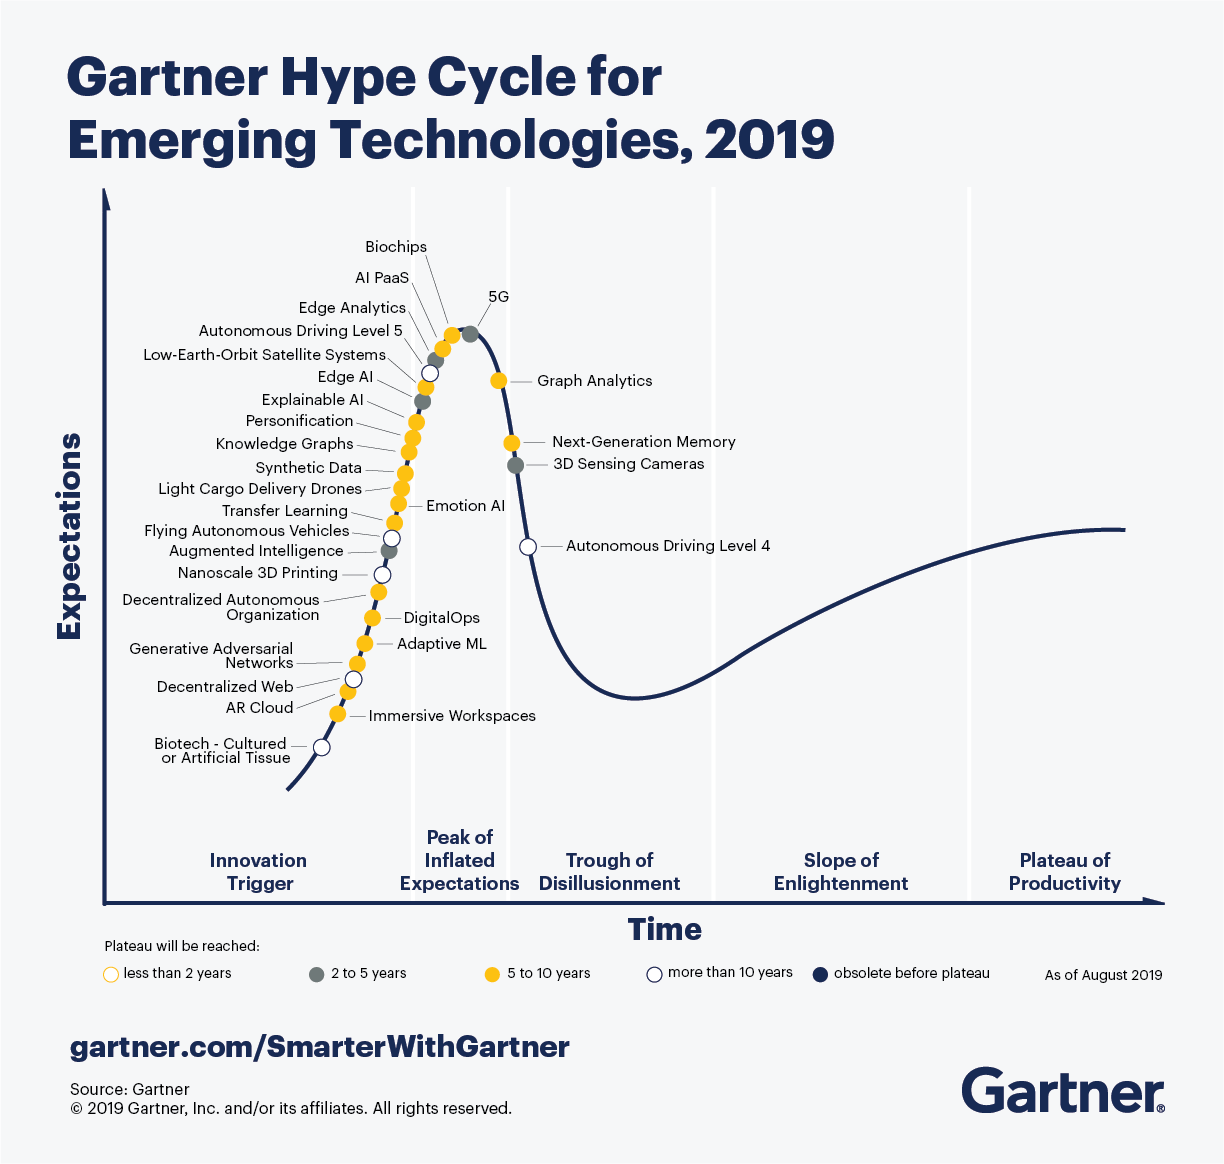 The Gartner Hype Cycle highlights the 29 emerging